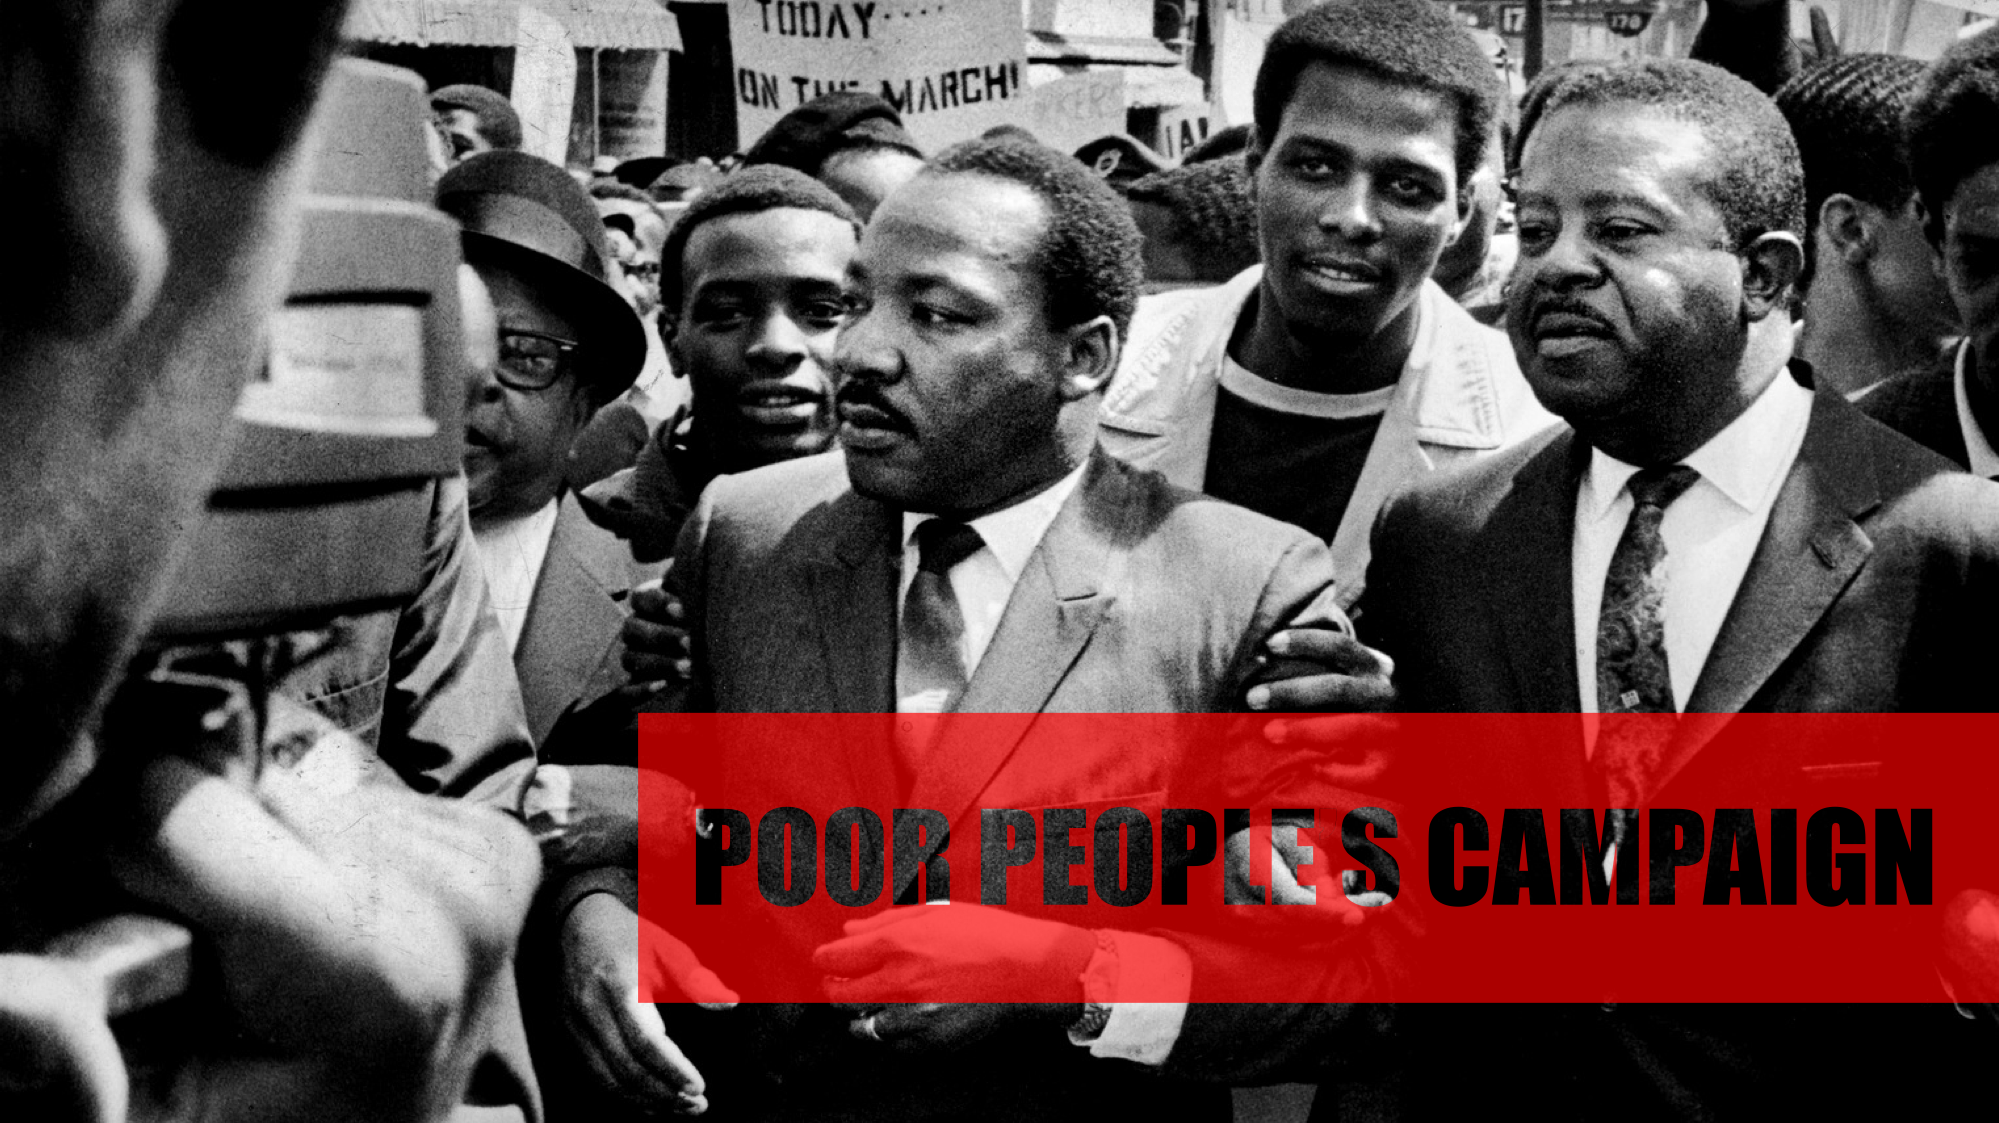 Poor People's Campaign, Repairers of the Breach, Kairos Center for Religions, Rights and Social Justice, Reverend Dr. Martin Luther King Jr., Dr. Martin Luther King, Dr. King, MLK, Civil Rights, Working Poor,